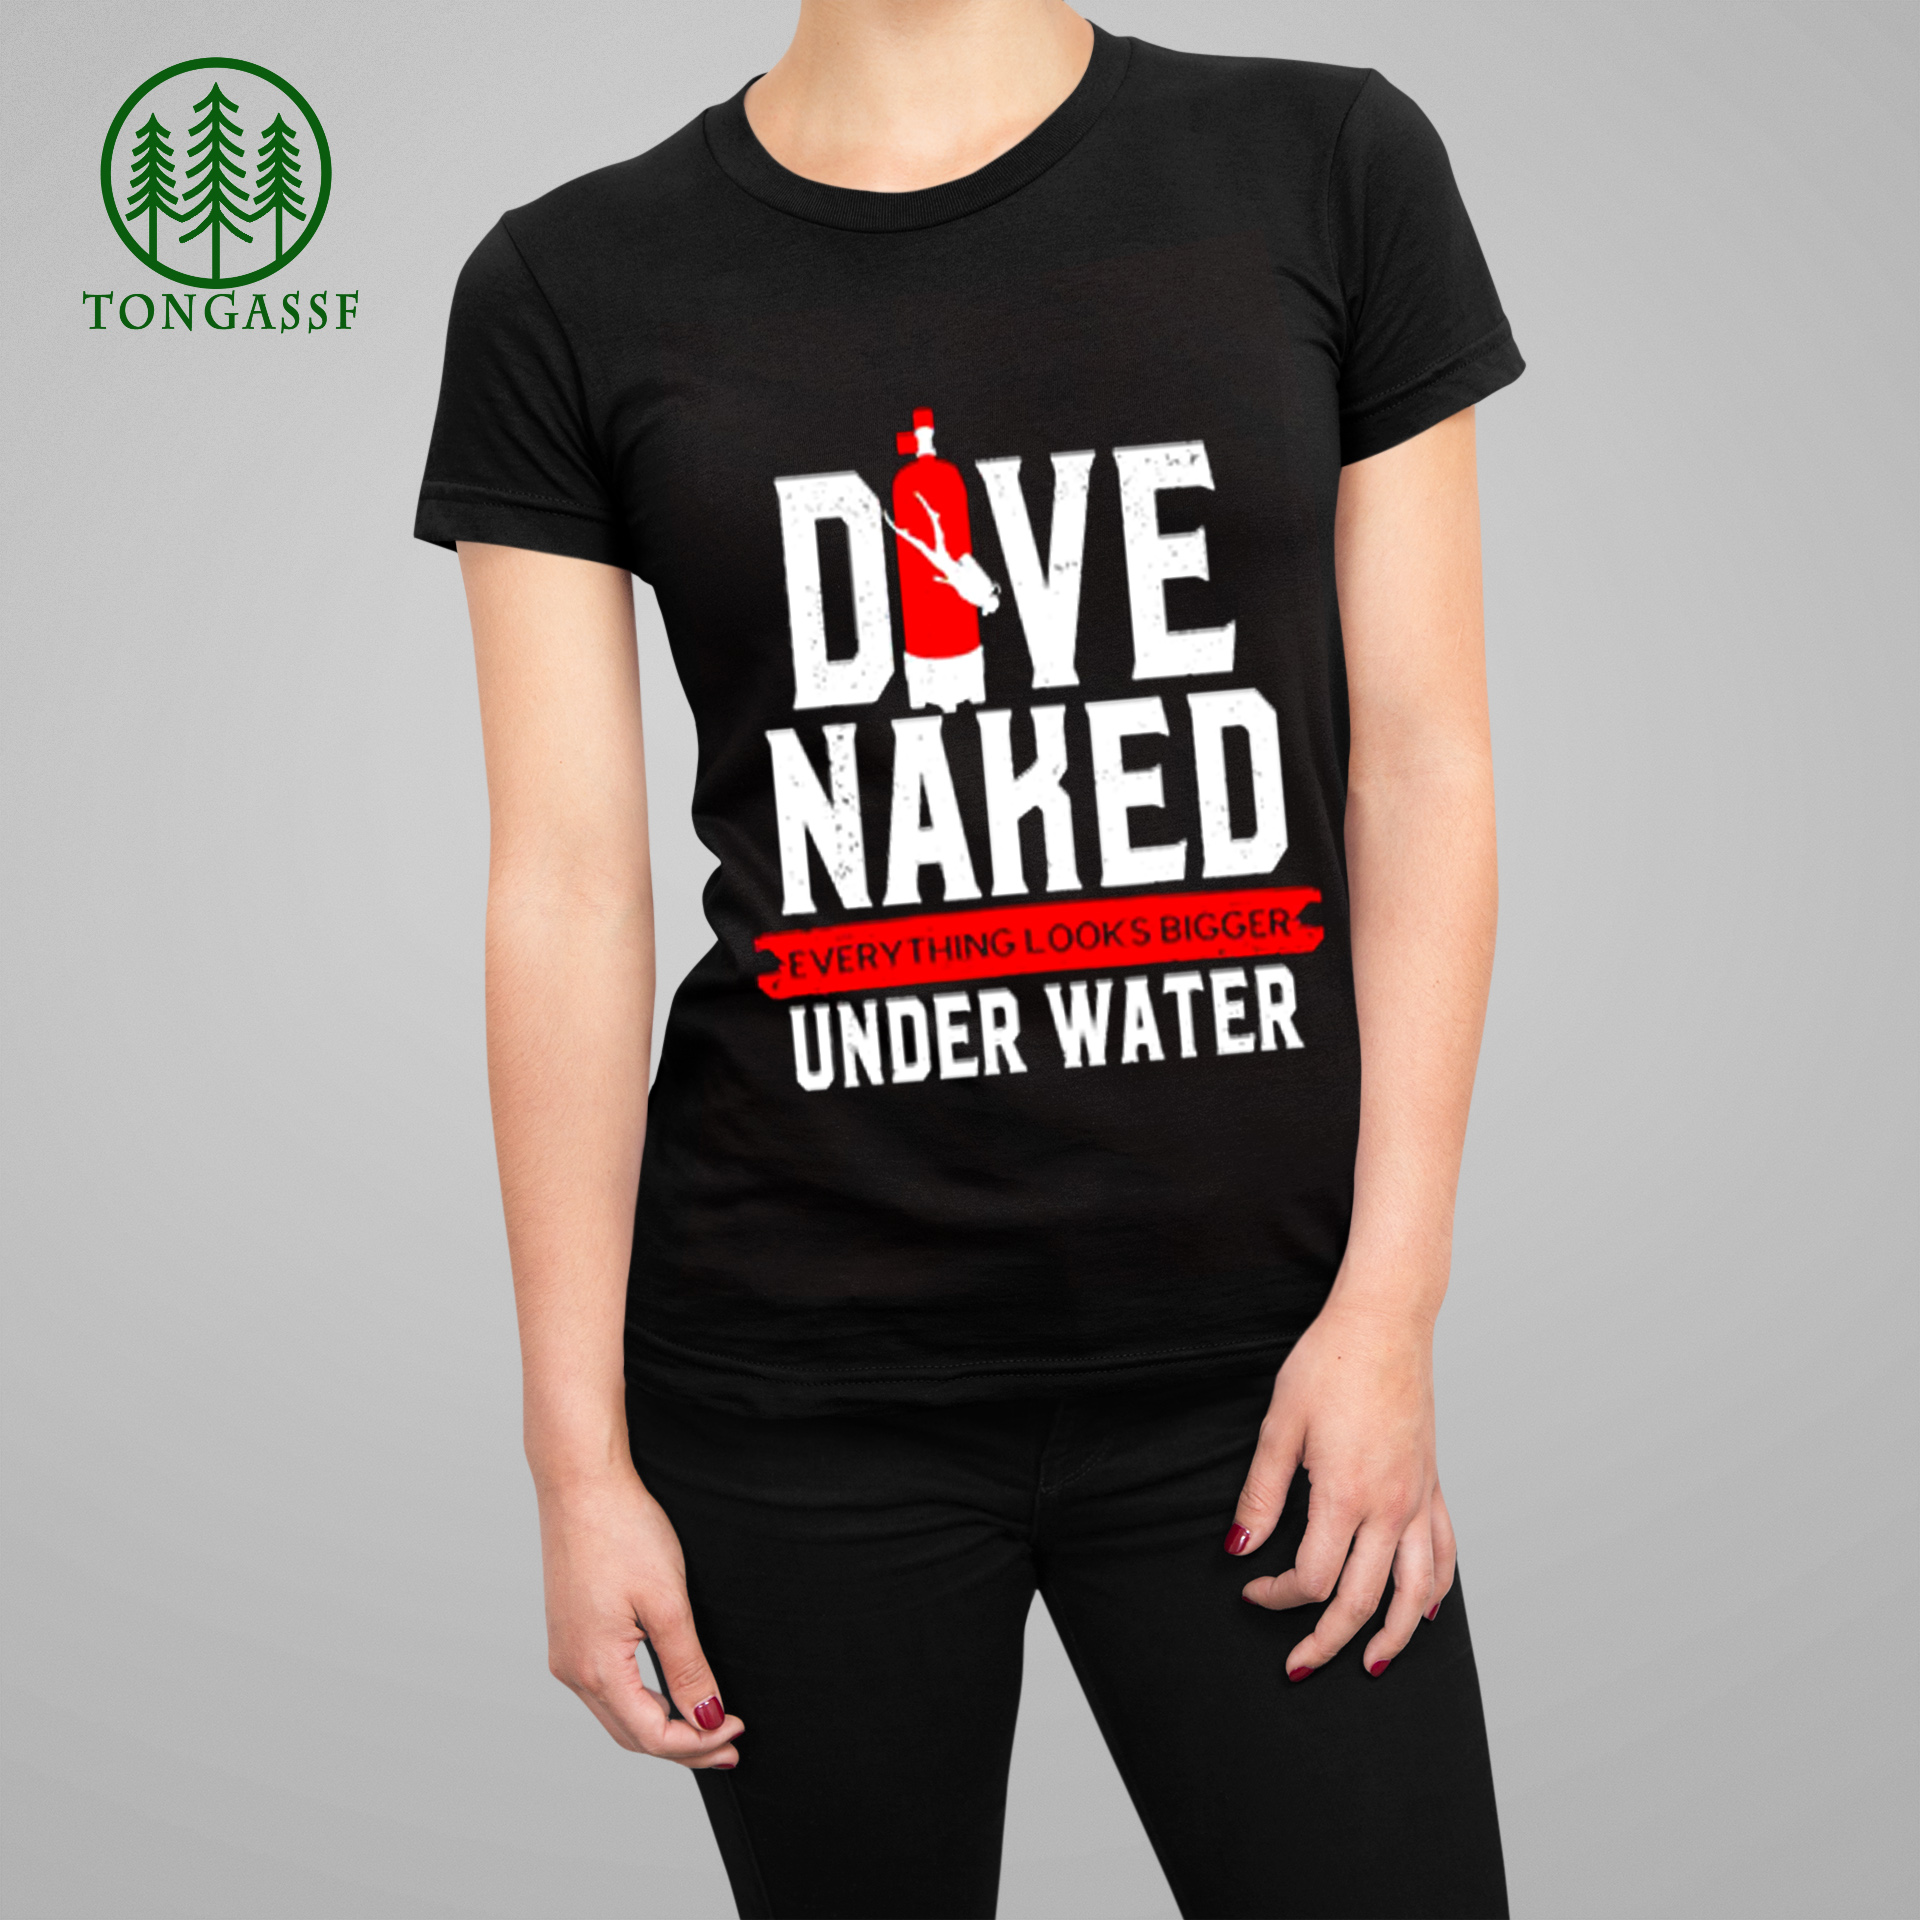 Dive naked everything looks bigger underwater T Shirt